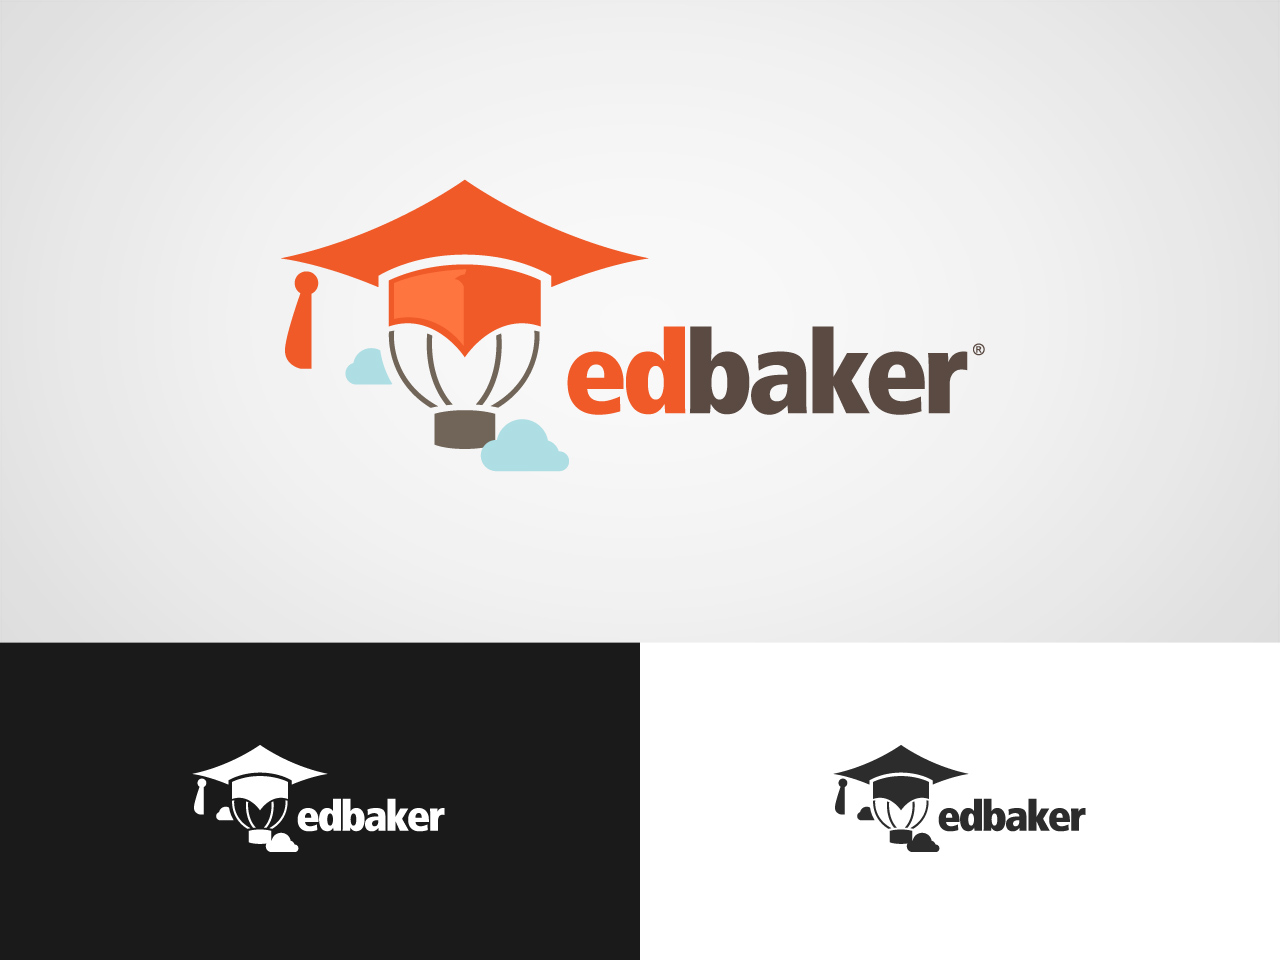 Logo Design by jpbituin - Entry No. 29 in the Logo Design Contest New Logo Design for edbacker.